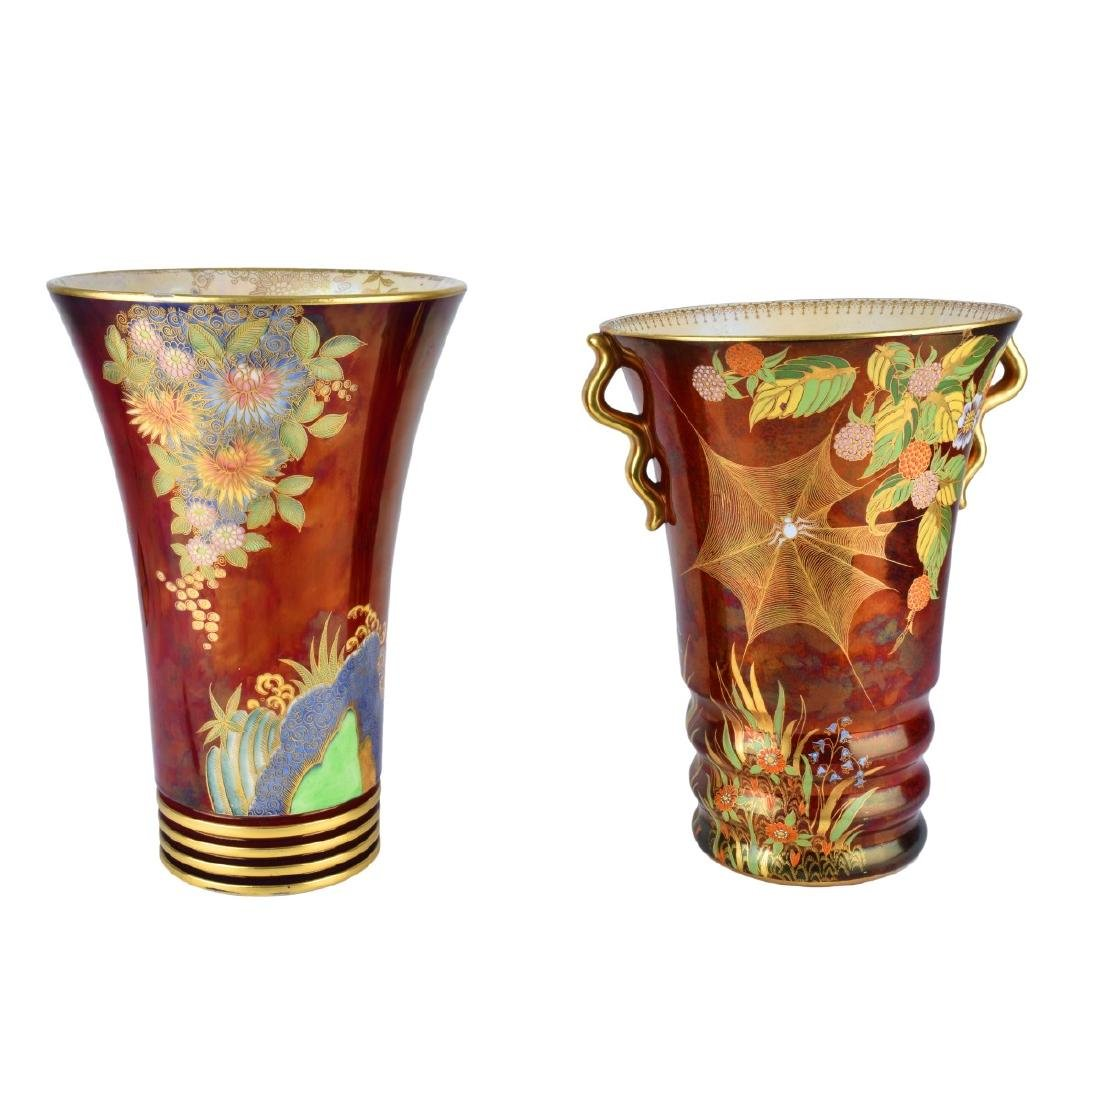 Carlton Ware Rouge Luster Pottery Vases